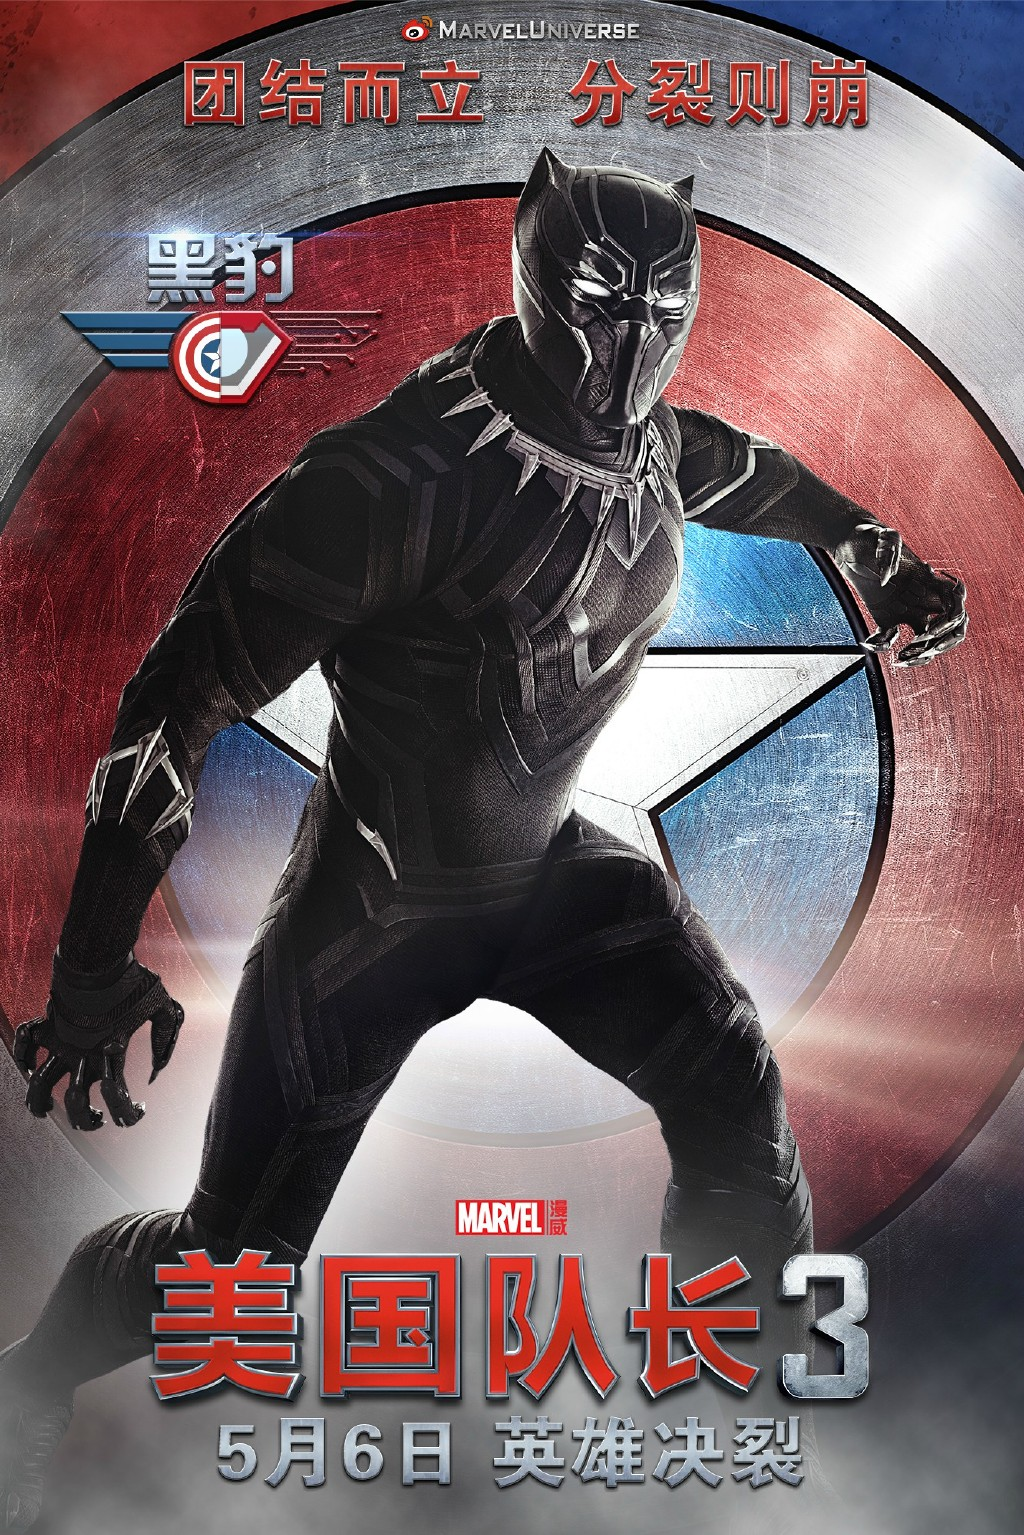 captain america, civil war, international posters, black panther, t'challa, chadwick boseman